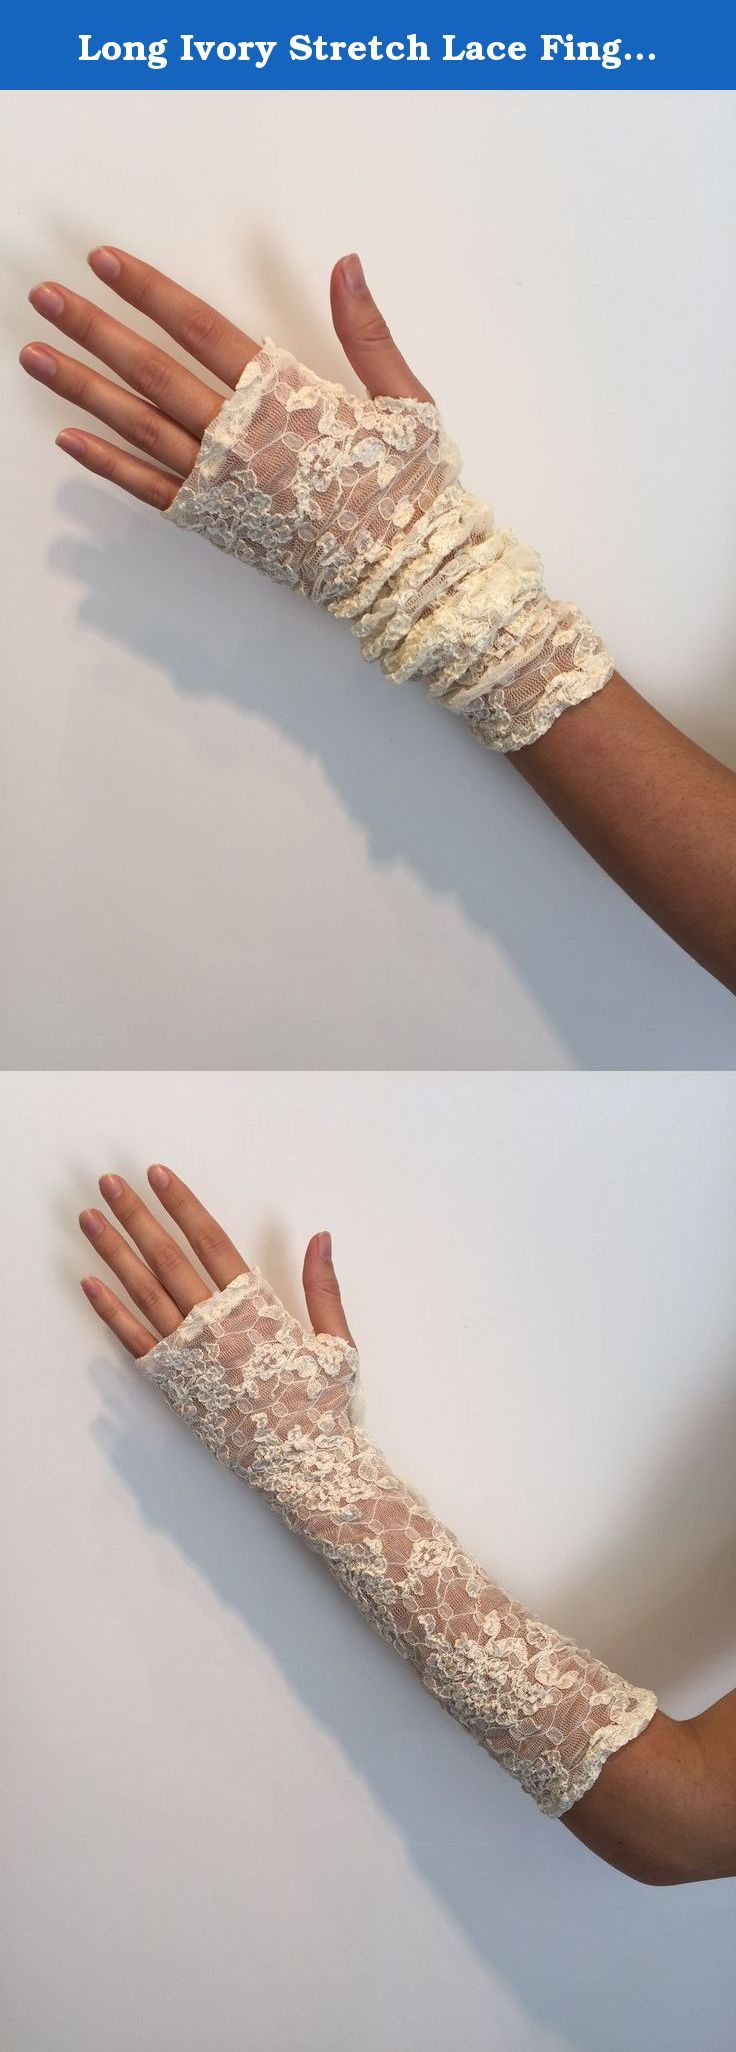 """Long Ivory Stretch Lace Fingerless Gloves. One Size Fits All. Bridal. These long ivory, fingerless gloves are made from stretch, lace fabric, extending to the elbow. Comfortable and soft. Unique and fun to wear. Ideal for any bride. One of a kind, hand made item. Easy on/off. Place your hand through the center and your thumb into the hole Ideal for warmth and a beautiful finish for a sleeveless/strapless outfit. The finished length measures 12"""" A true fashion item. One size fits all. Hand..."""